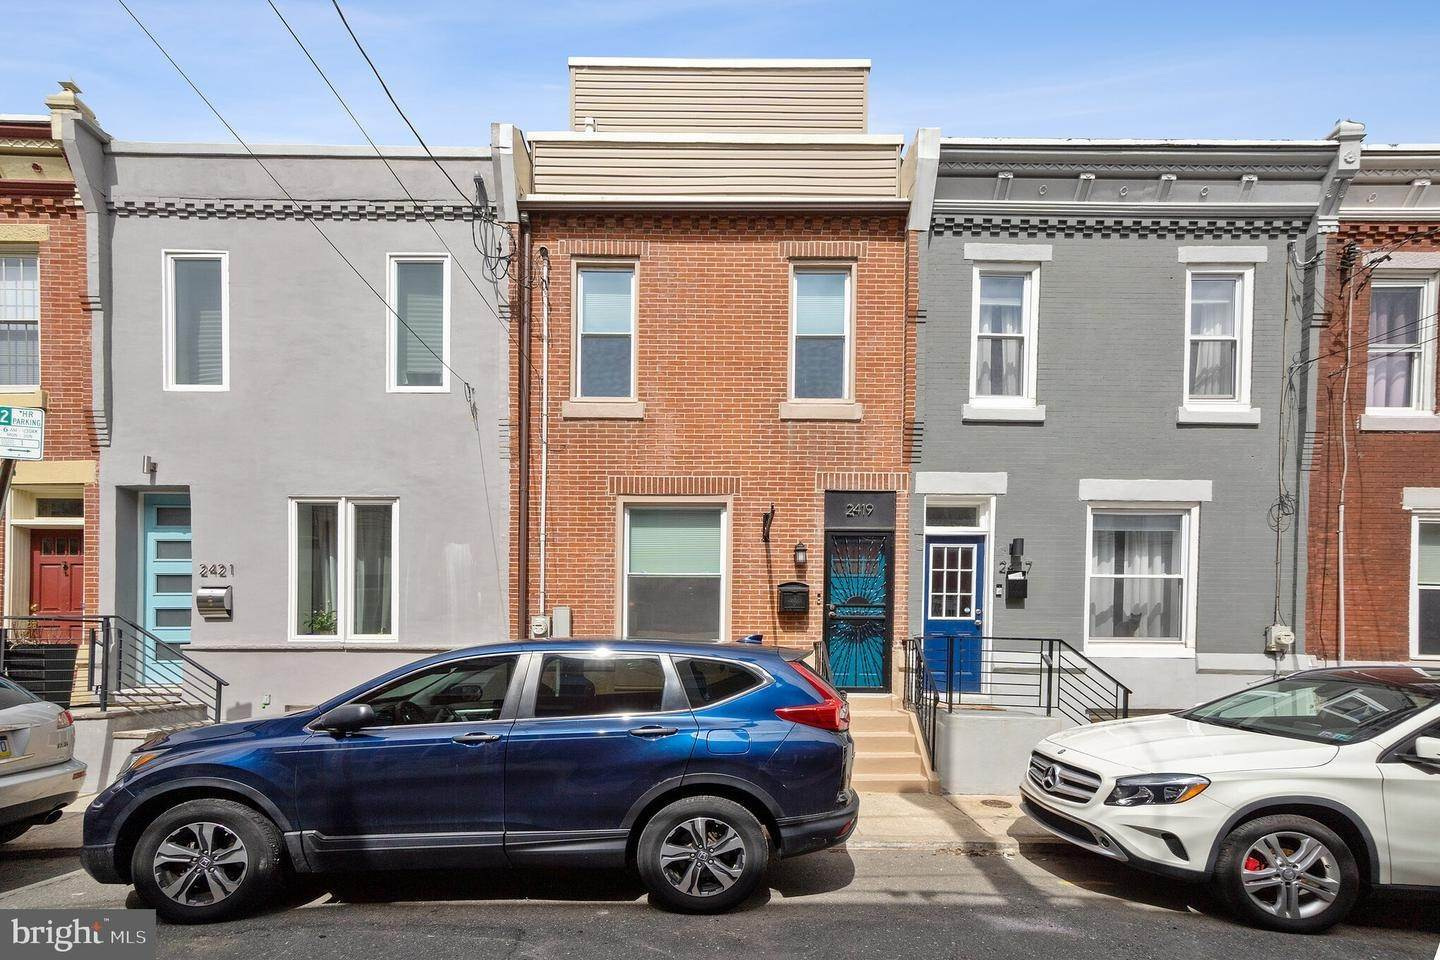 Property for Sale at 2419 KIMBALL Street Philadelphia, Pennsylvania 19146 United States